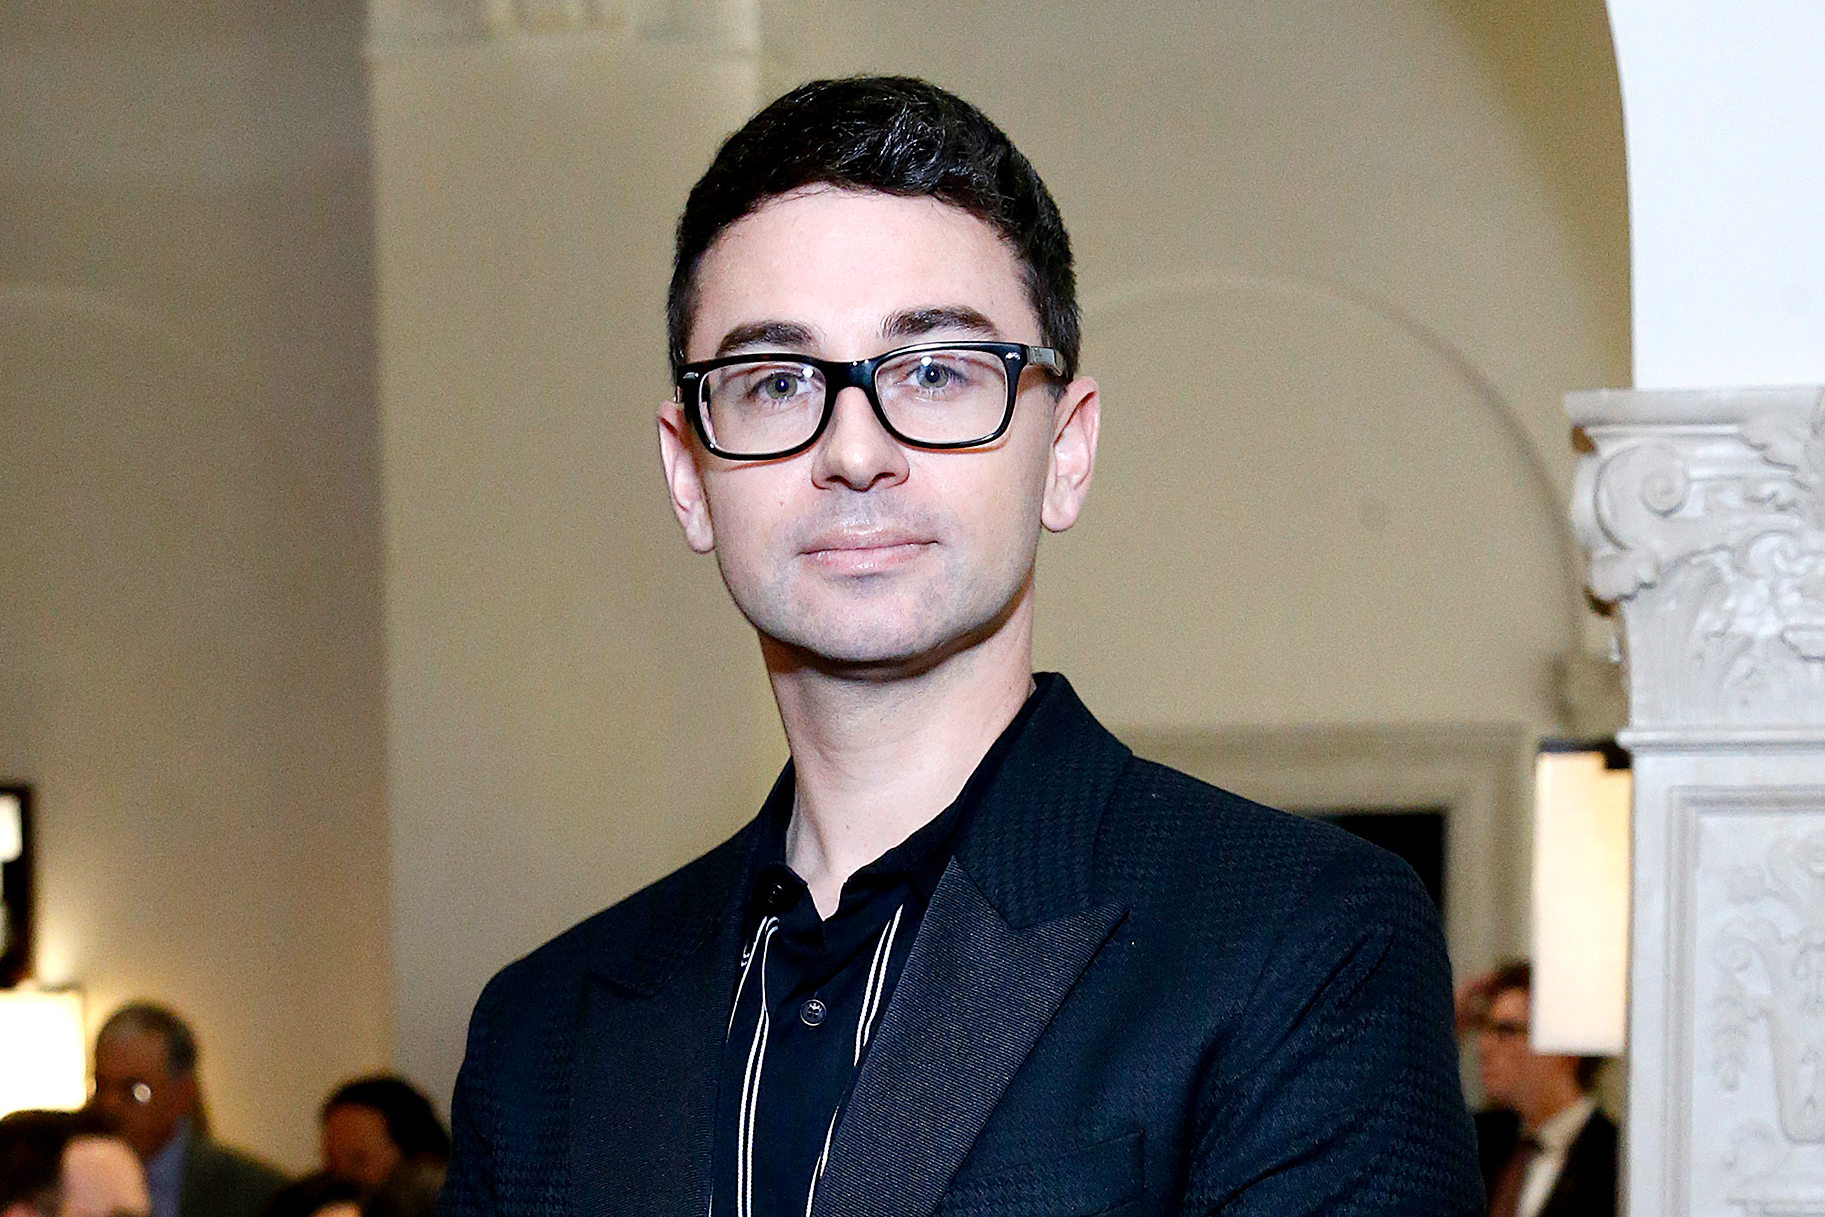 Christian Siriano Project Runway Alum